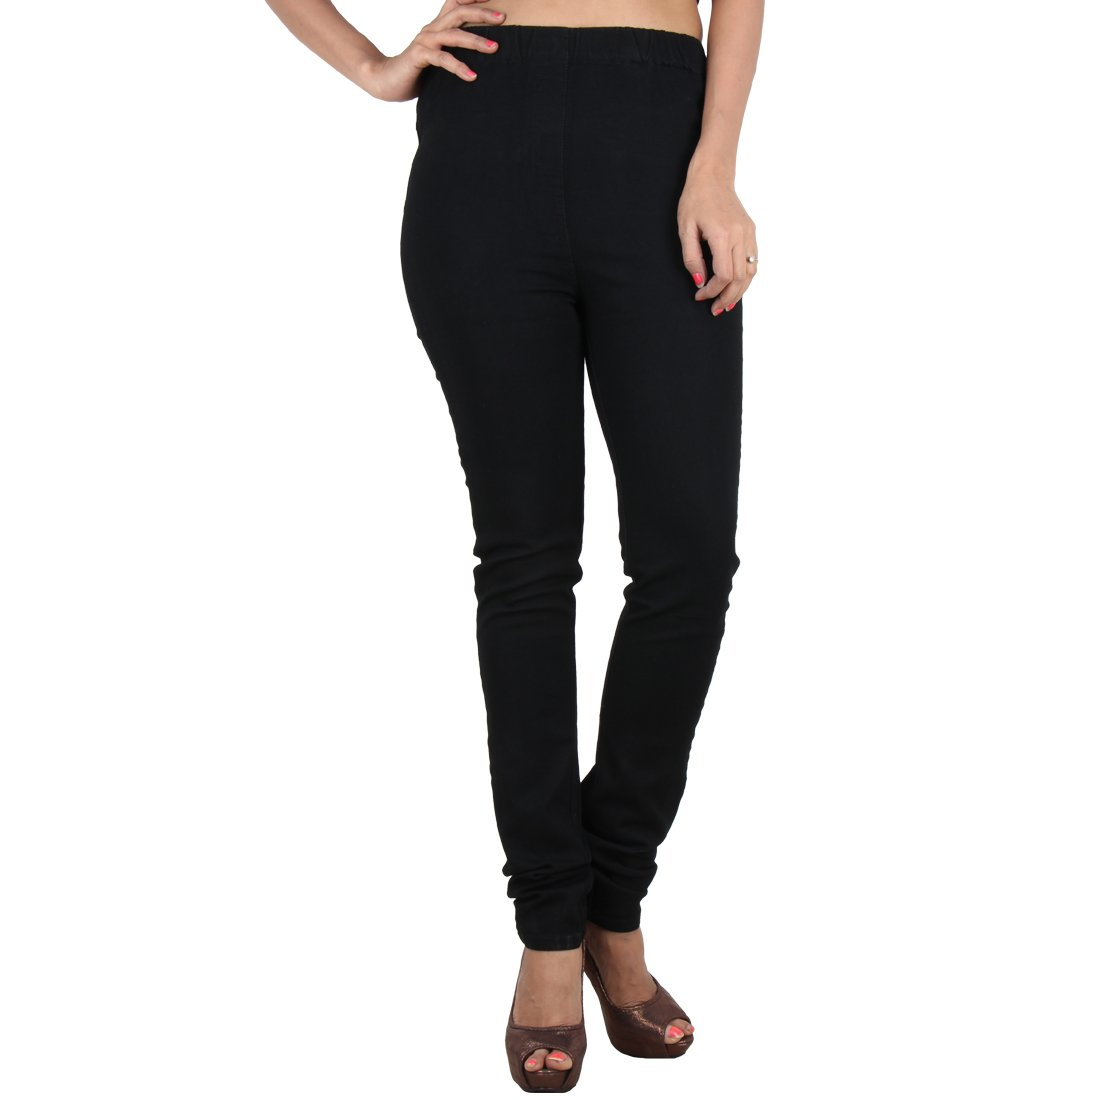 240c8a9b2646e Best Rated in Women's Jeans & Jeggings & Helpful Customer Reviews ...